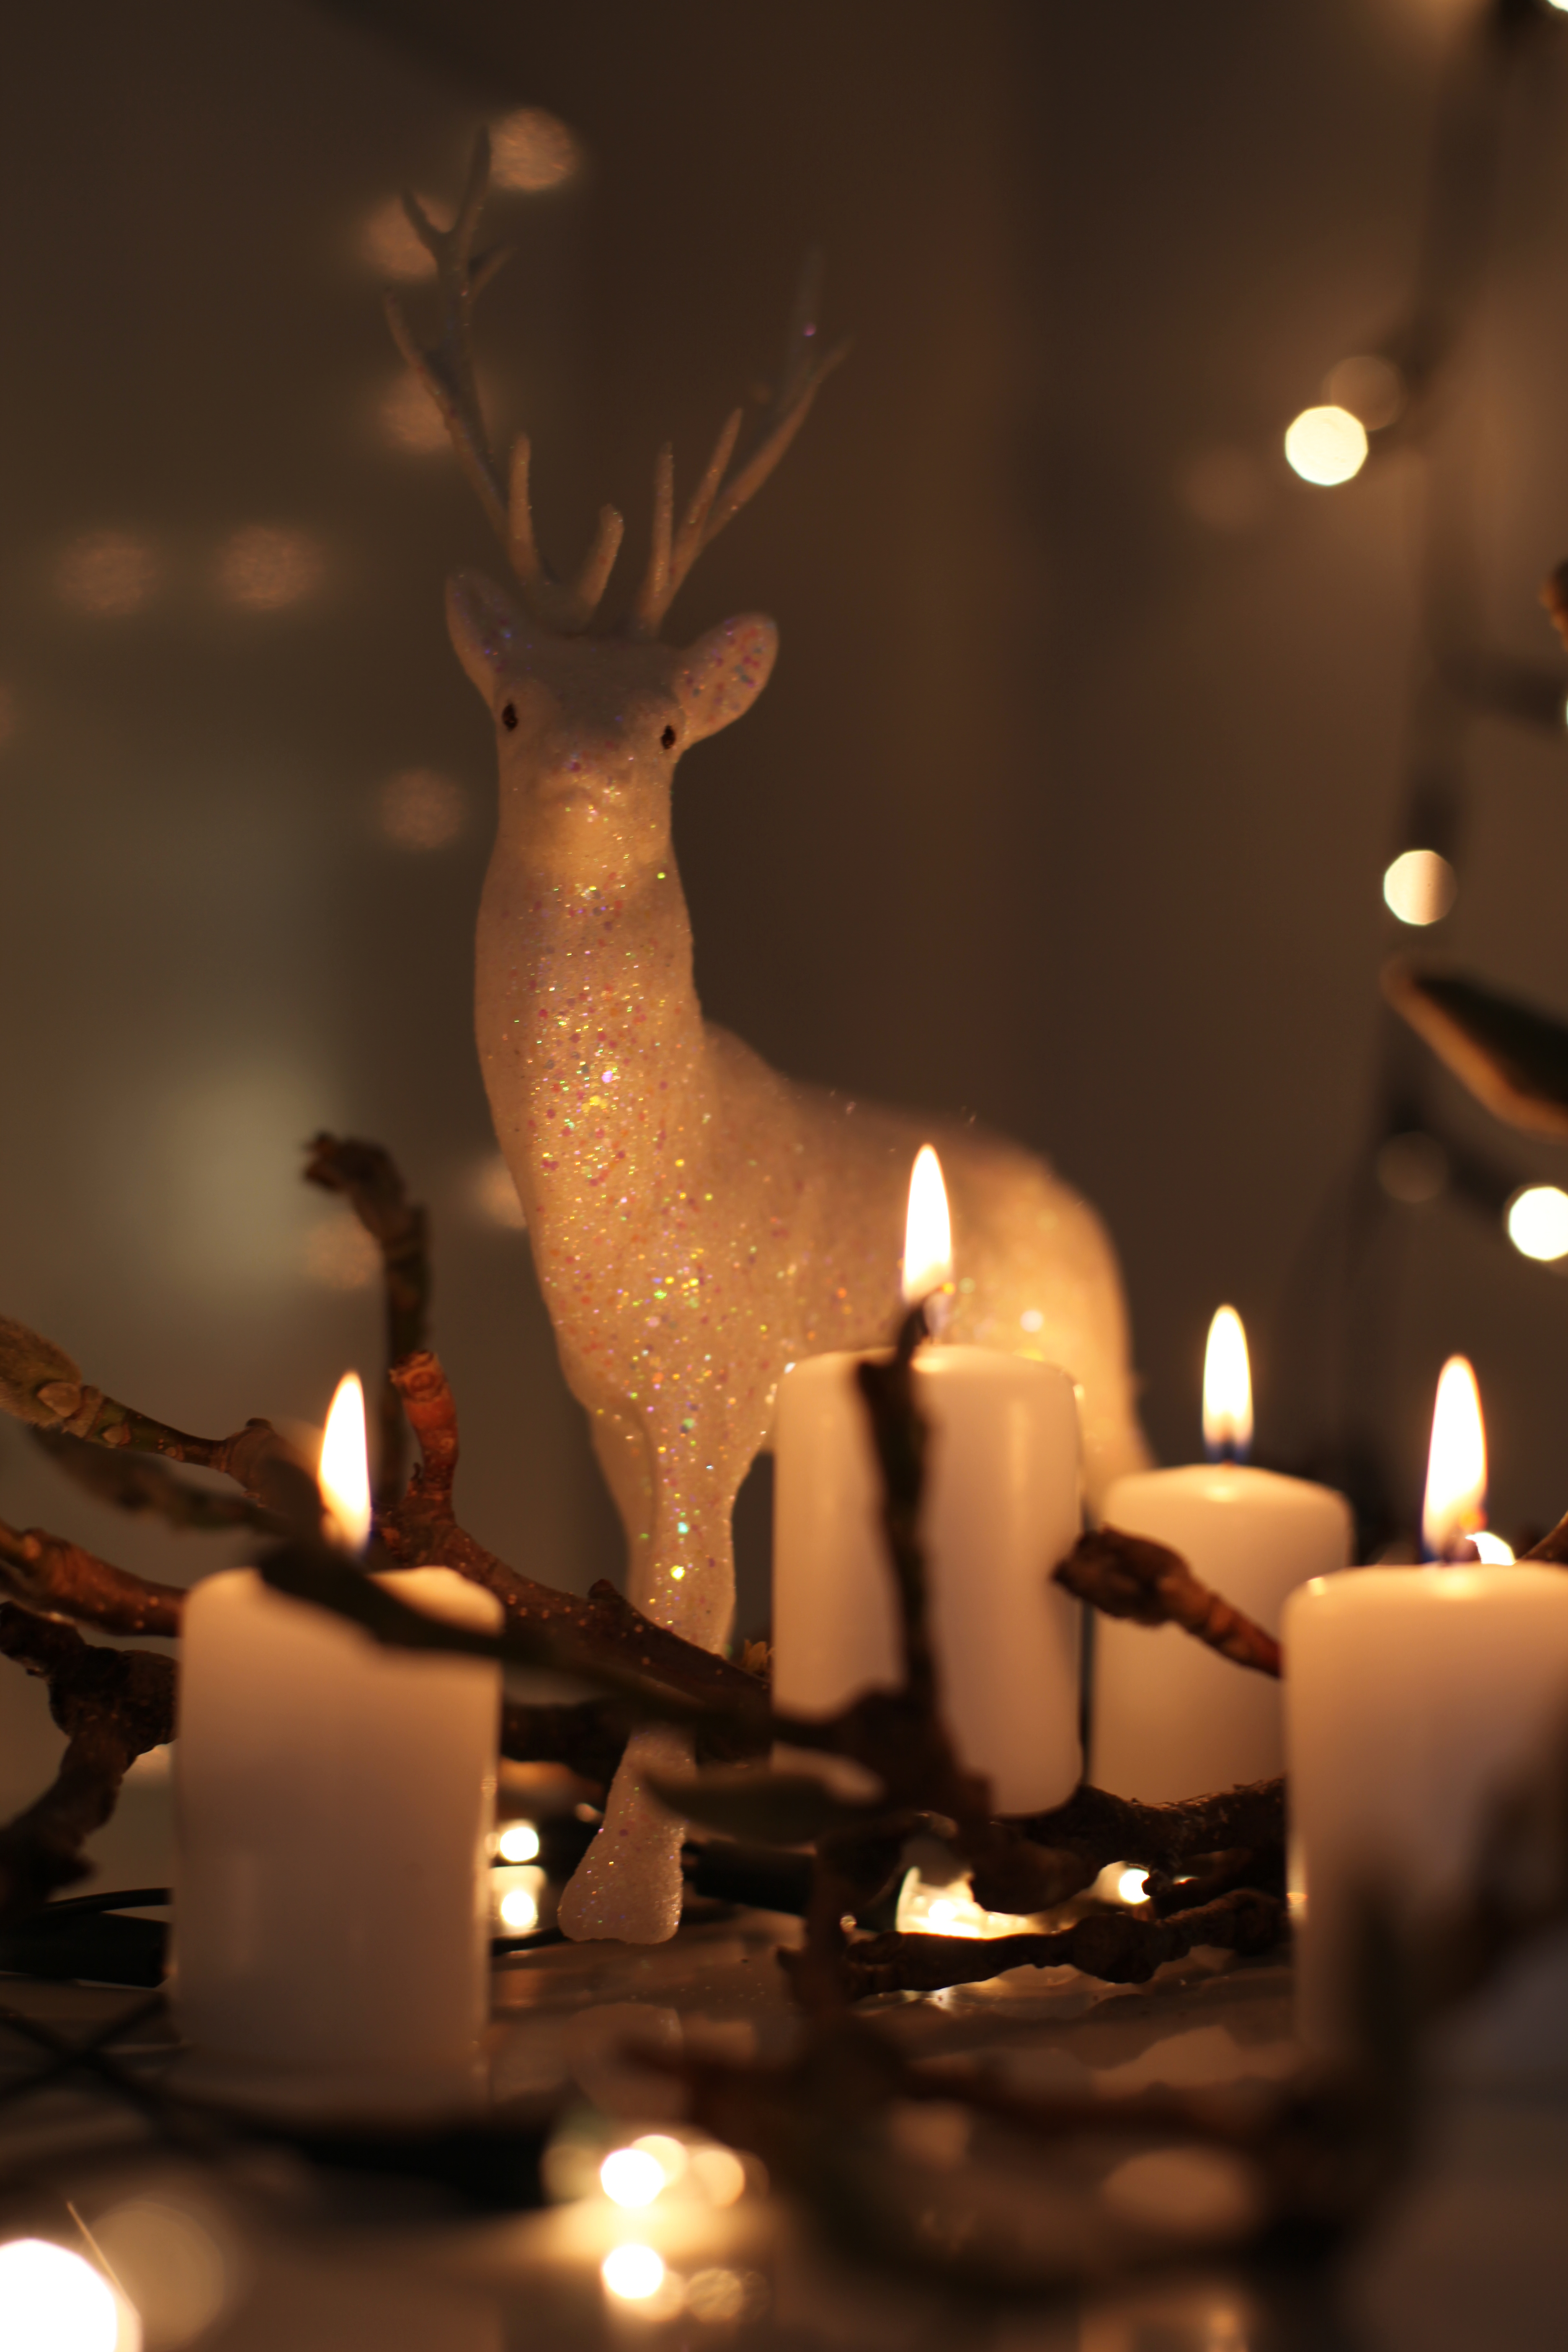 4. Advent (c) FSF